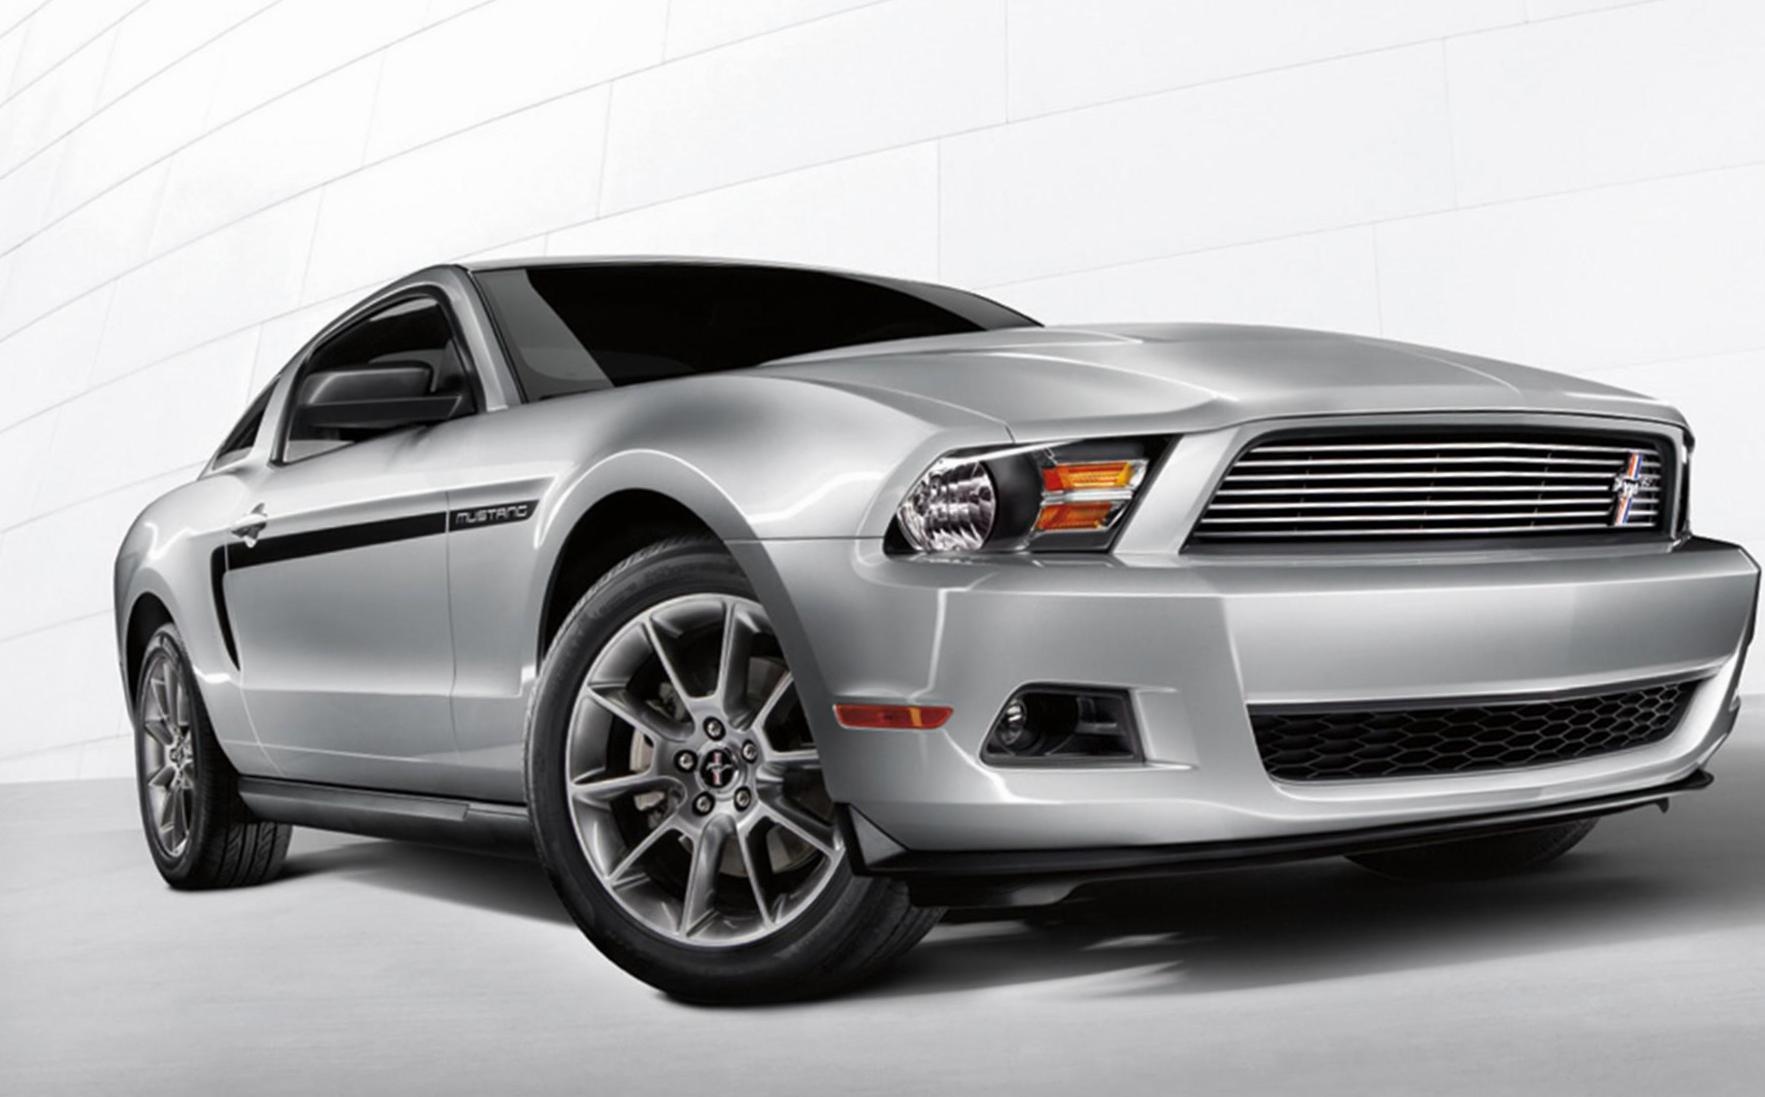 Mustang Ford model 2011